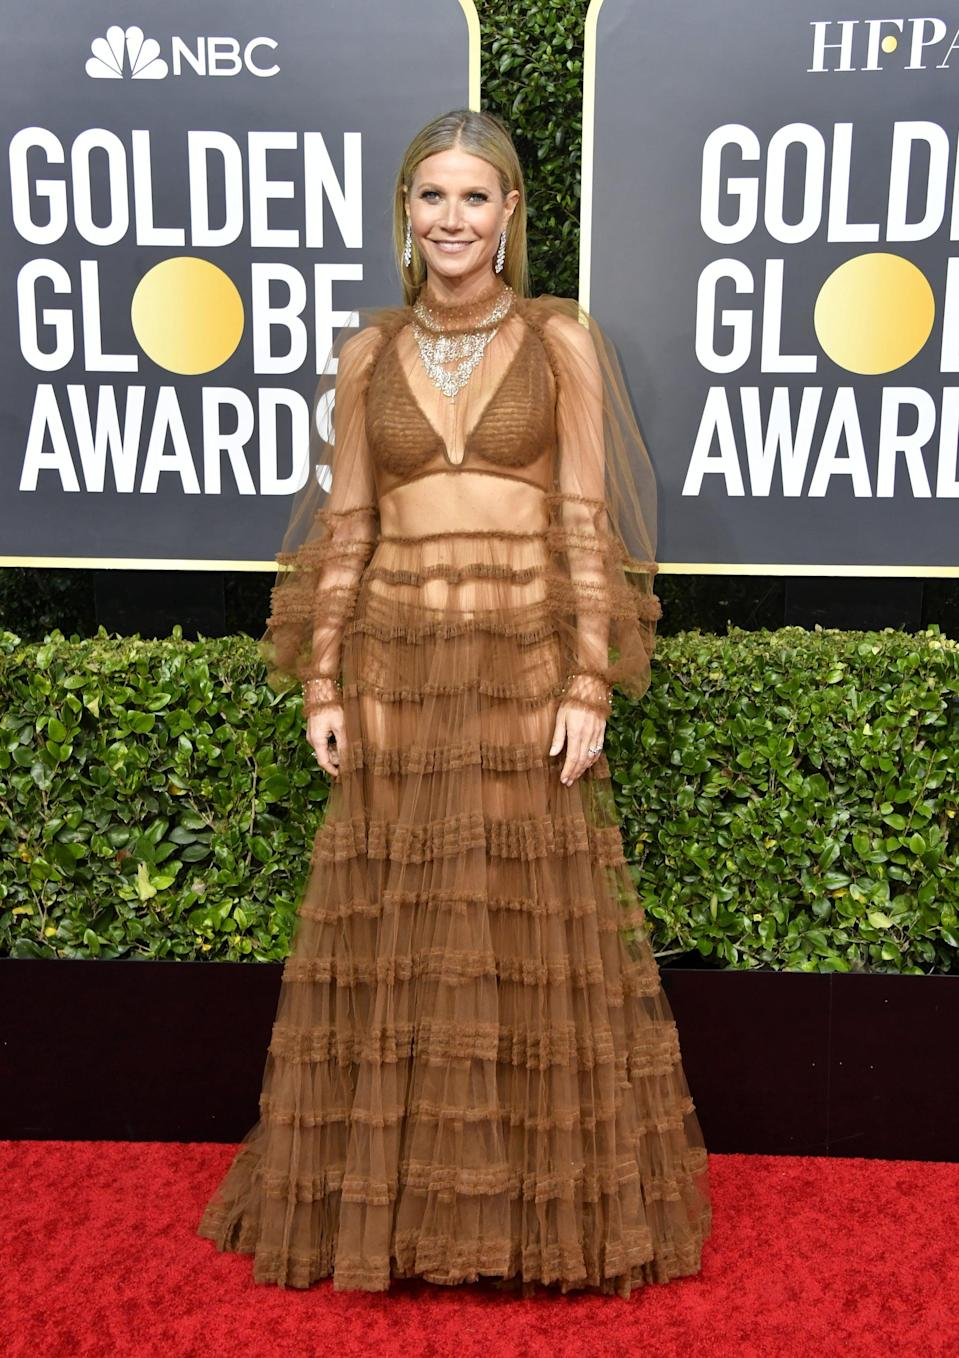 """<p><a class=""""link rapid-noclick-resp"""" href=""""https://www.popsugar.com/Gwyneth-Paltrow"""" rel=""""nofollow noopener"""" target=""""_blank"""" data-ylk=""""slk:Gwyneth Paltrow"""">Gwyneth Paltrow</a> revealed her lingerie underneath her sheer, ruffled Fendi maxi gown at the 2020 Golden Globes. Rather than layering her statement necklace over the high neckline, Gwyneth accessorized in a subtler way, a style move we're not used to seeing but one that might have been suggested by her stylist, Elizabeth Saltzman.</p>"""